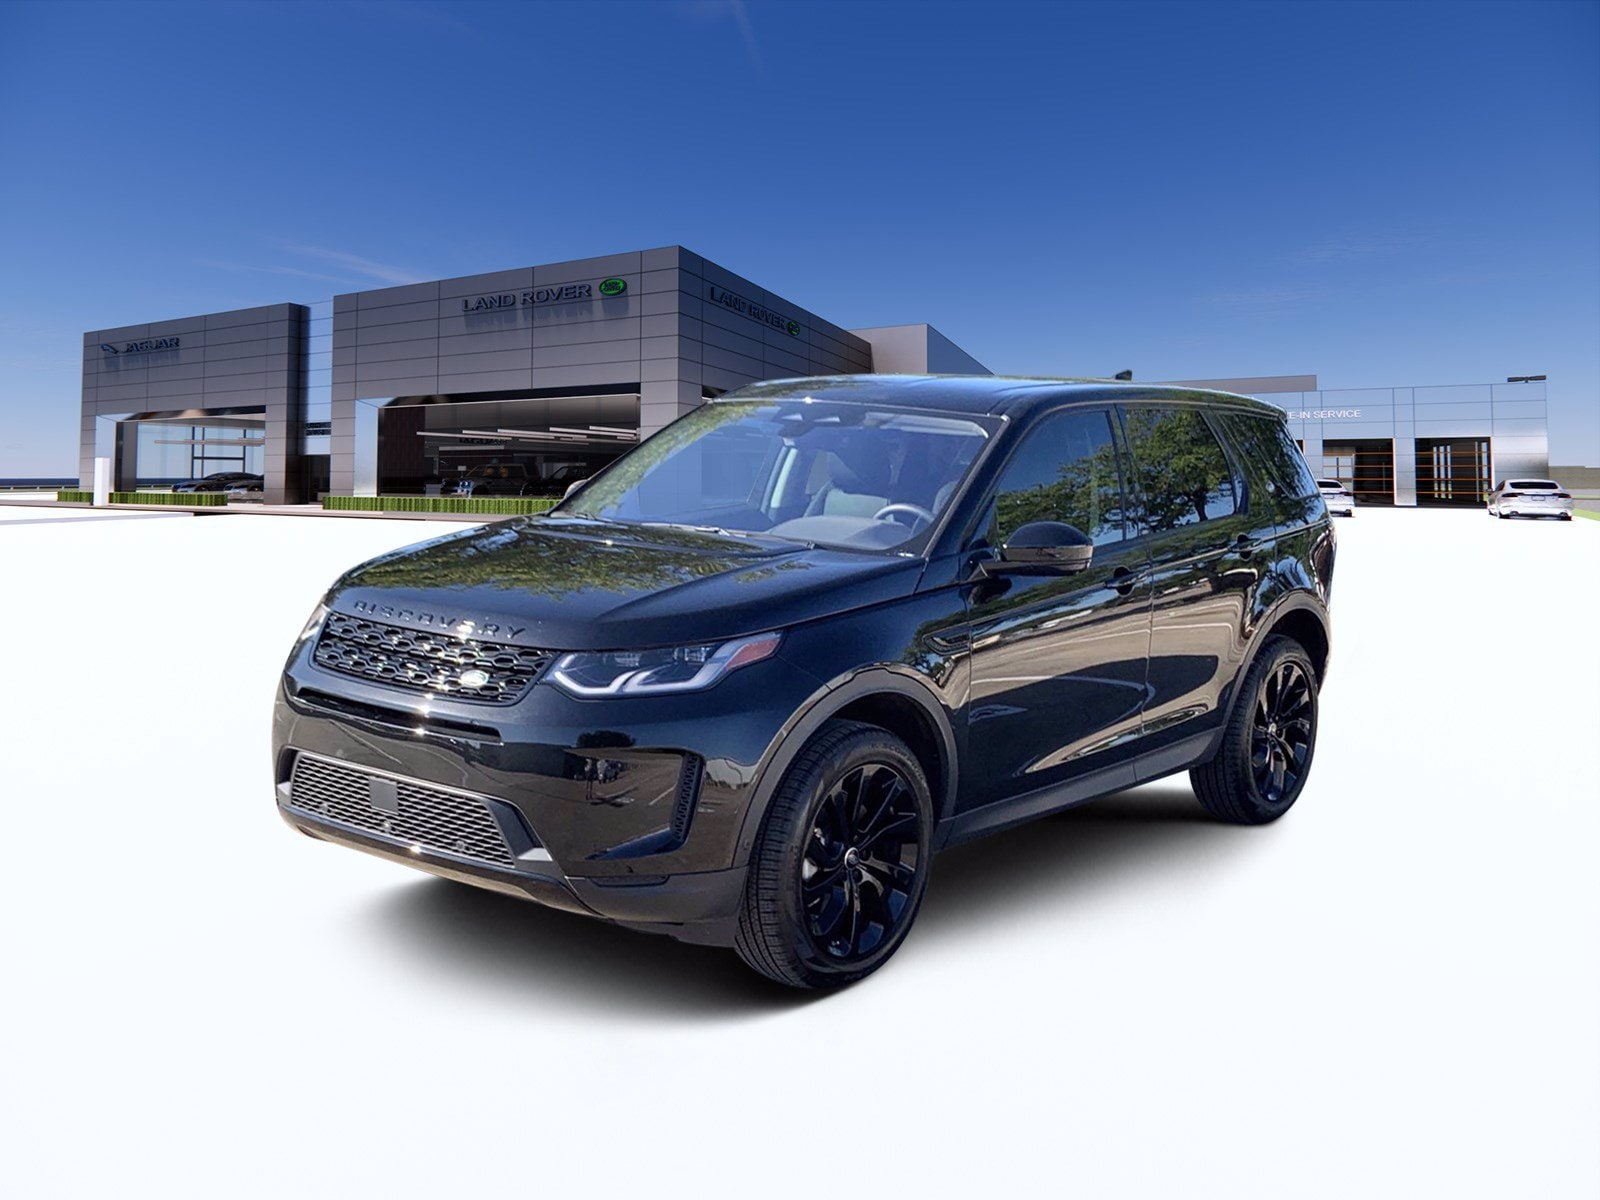 2021 Land Rover Discovery Sport SUV